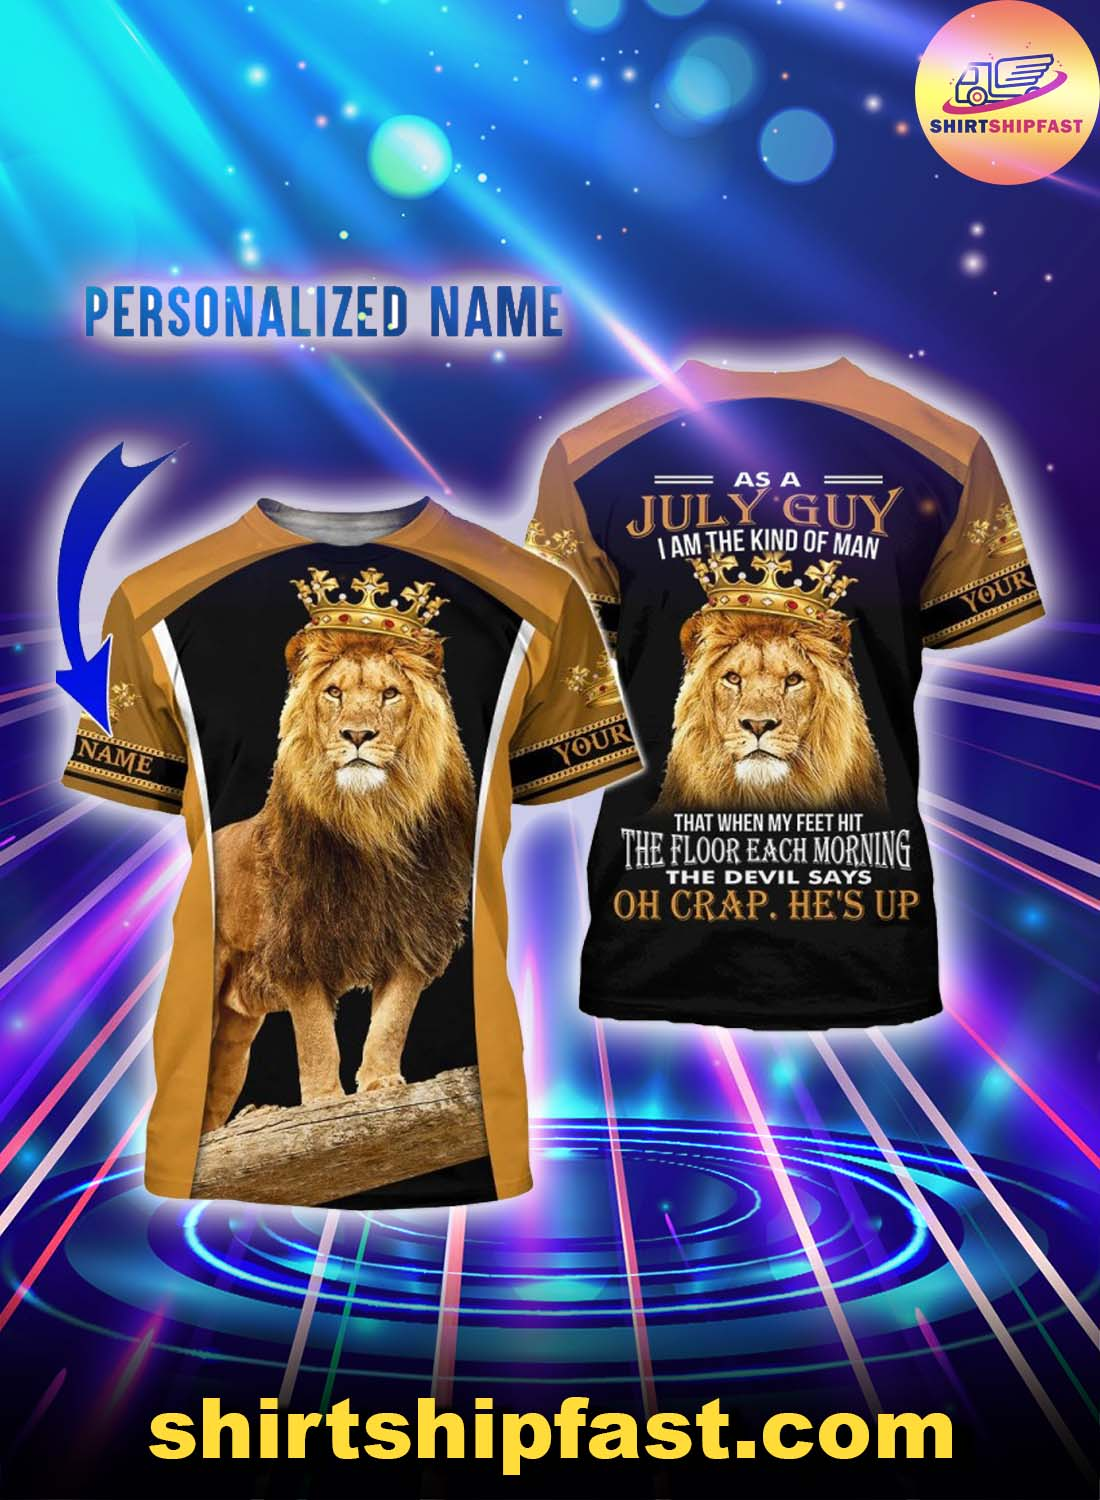 Personalized name July guy all over printed t-shirt and hoodie